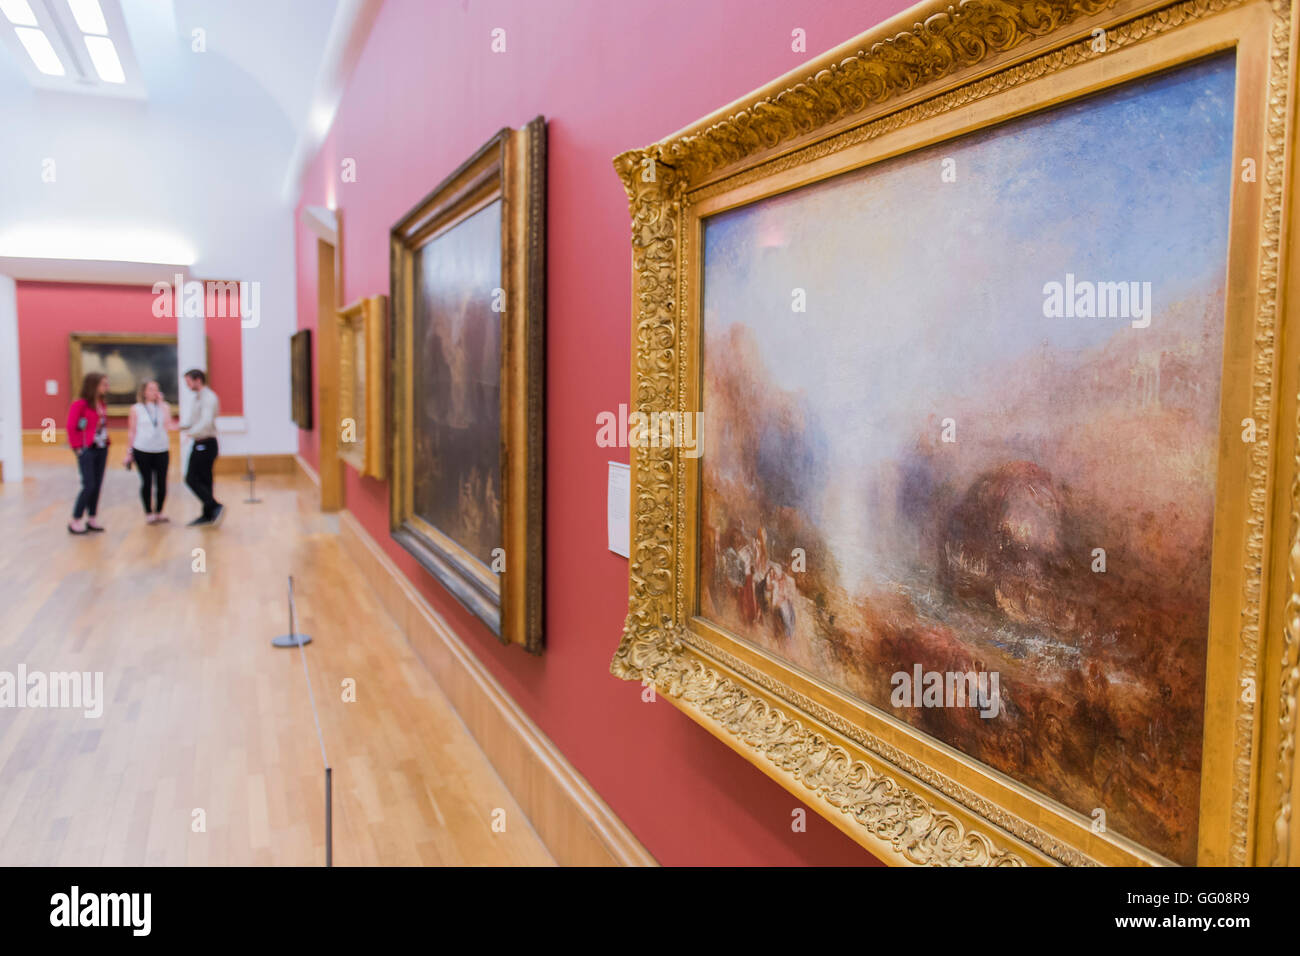 London, UK. 3rd August, 2016. Mercury Sent to Admonish Aeneas in the central gallery - Works by JMW Turner, which - Stock Image